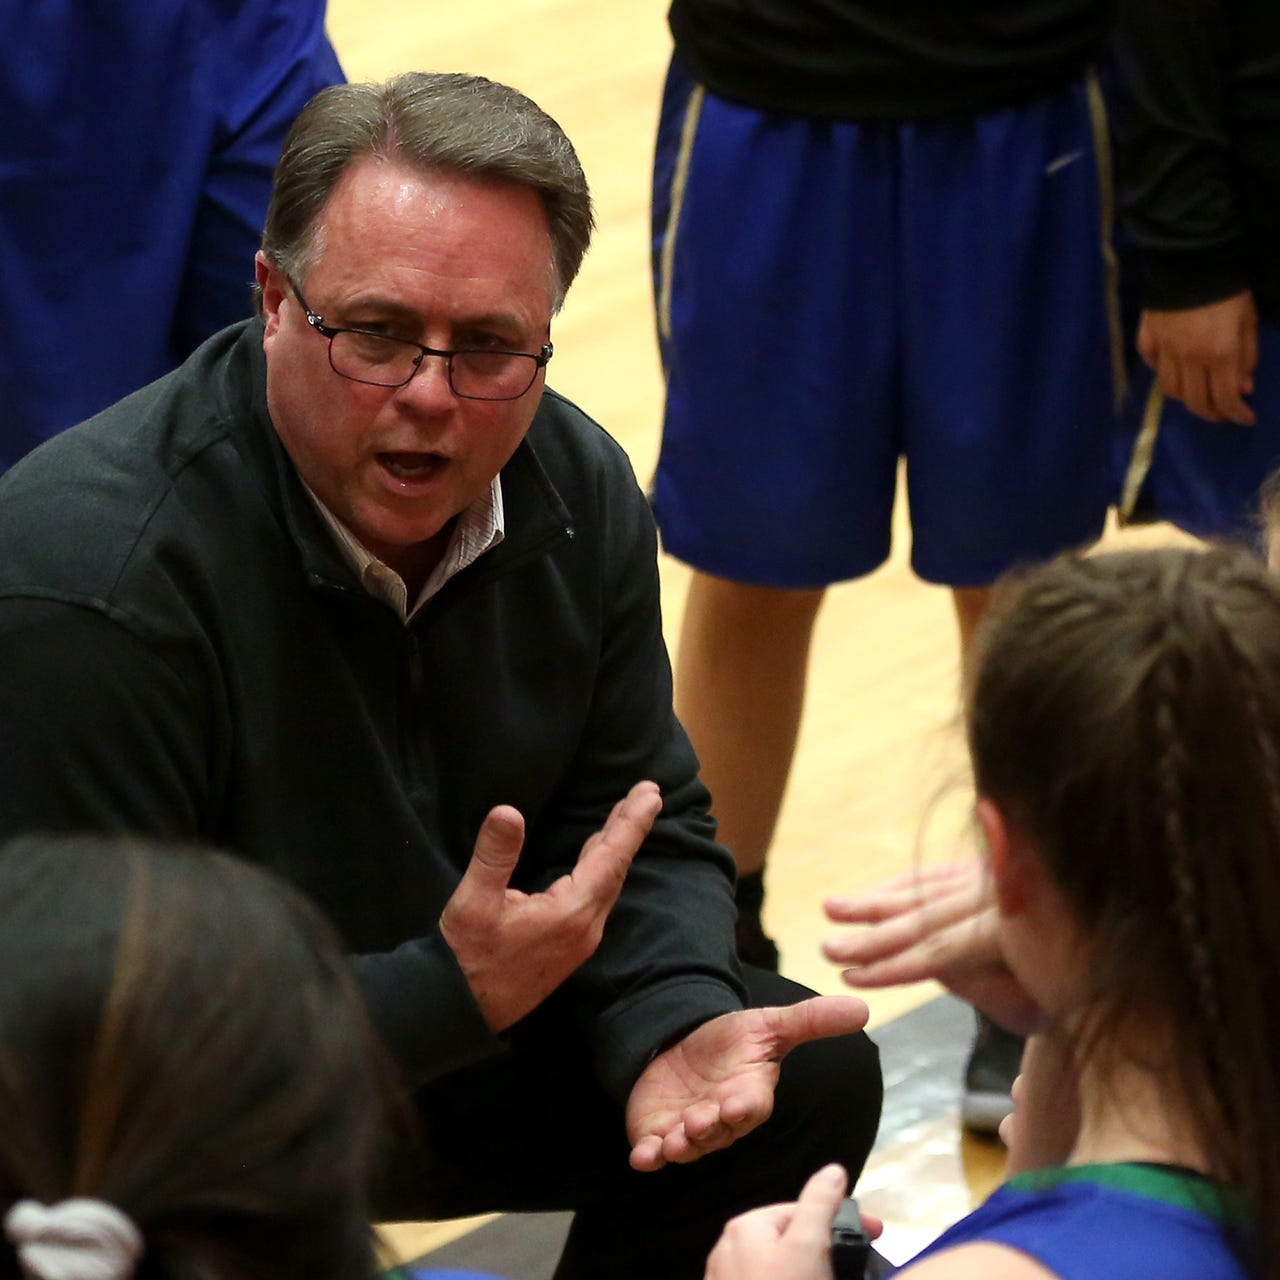 McKay girls basketball: From 0-24 to a playoff contender